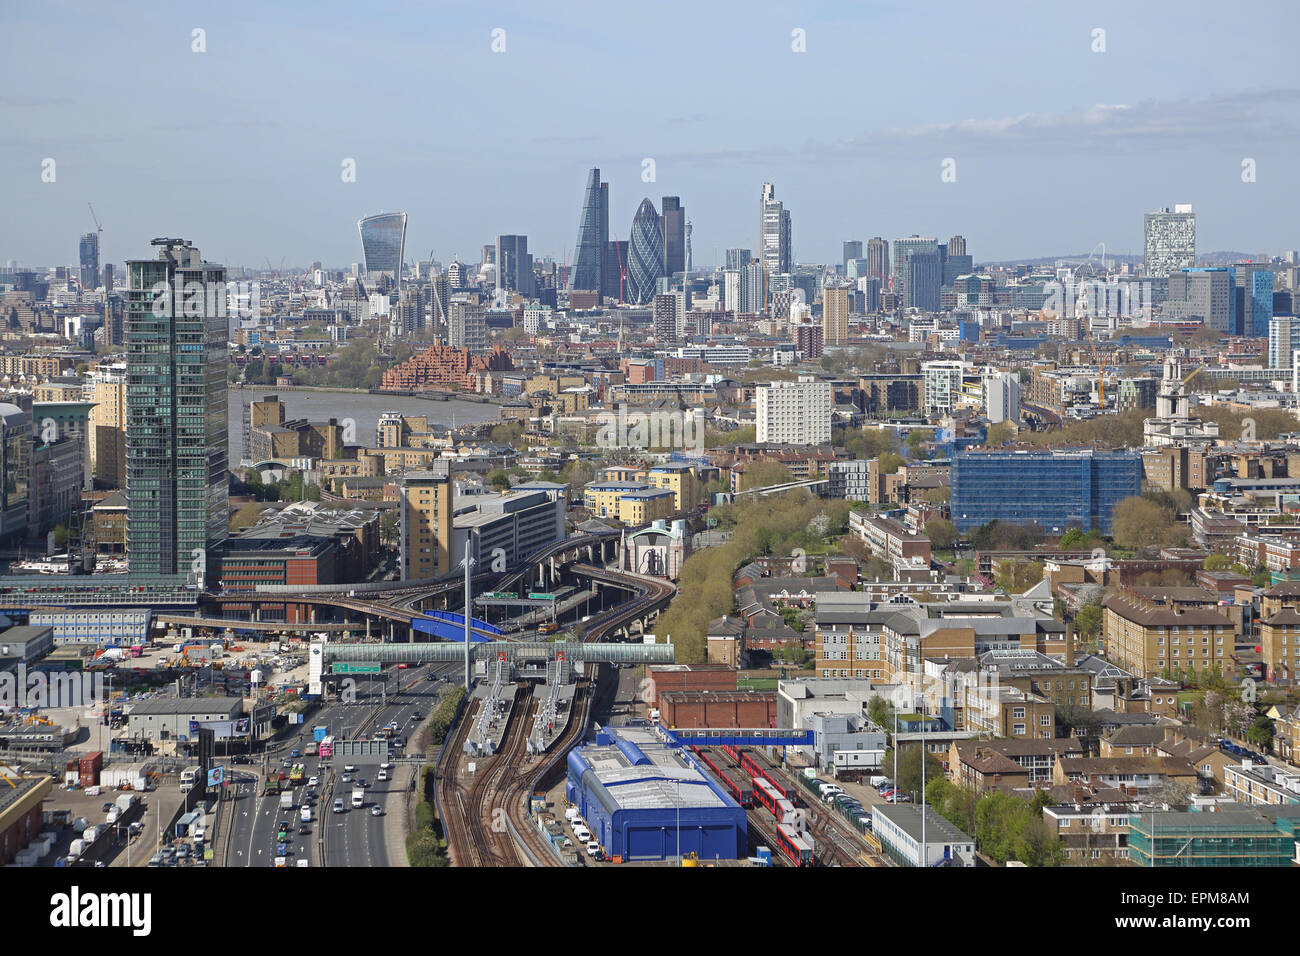 High level view of the City of London from the east showing Poplar DLR station and the Aspen Way dual carriageway - Stock Image